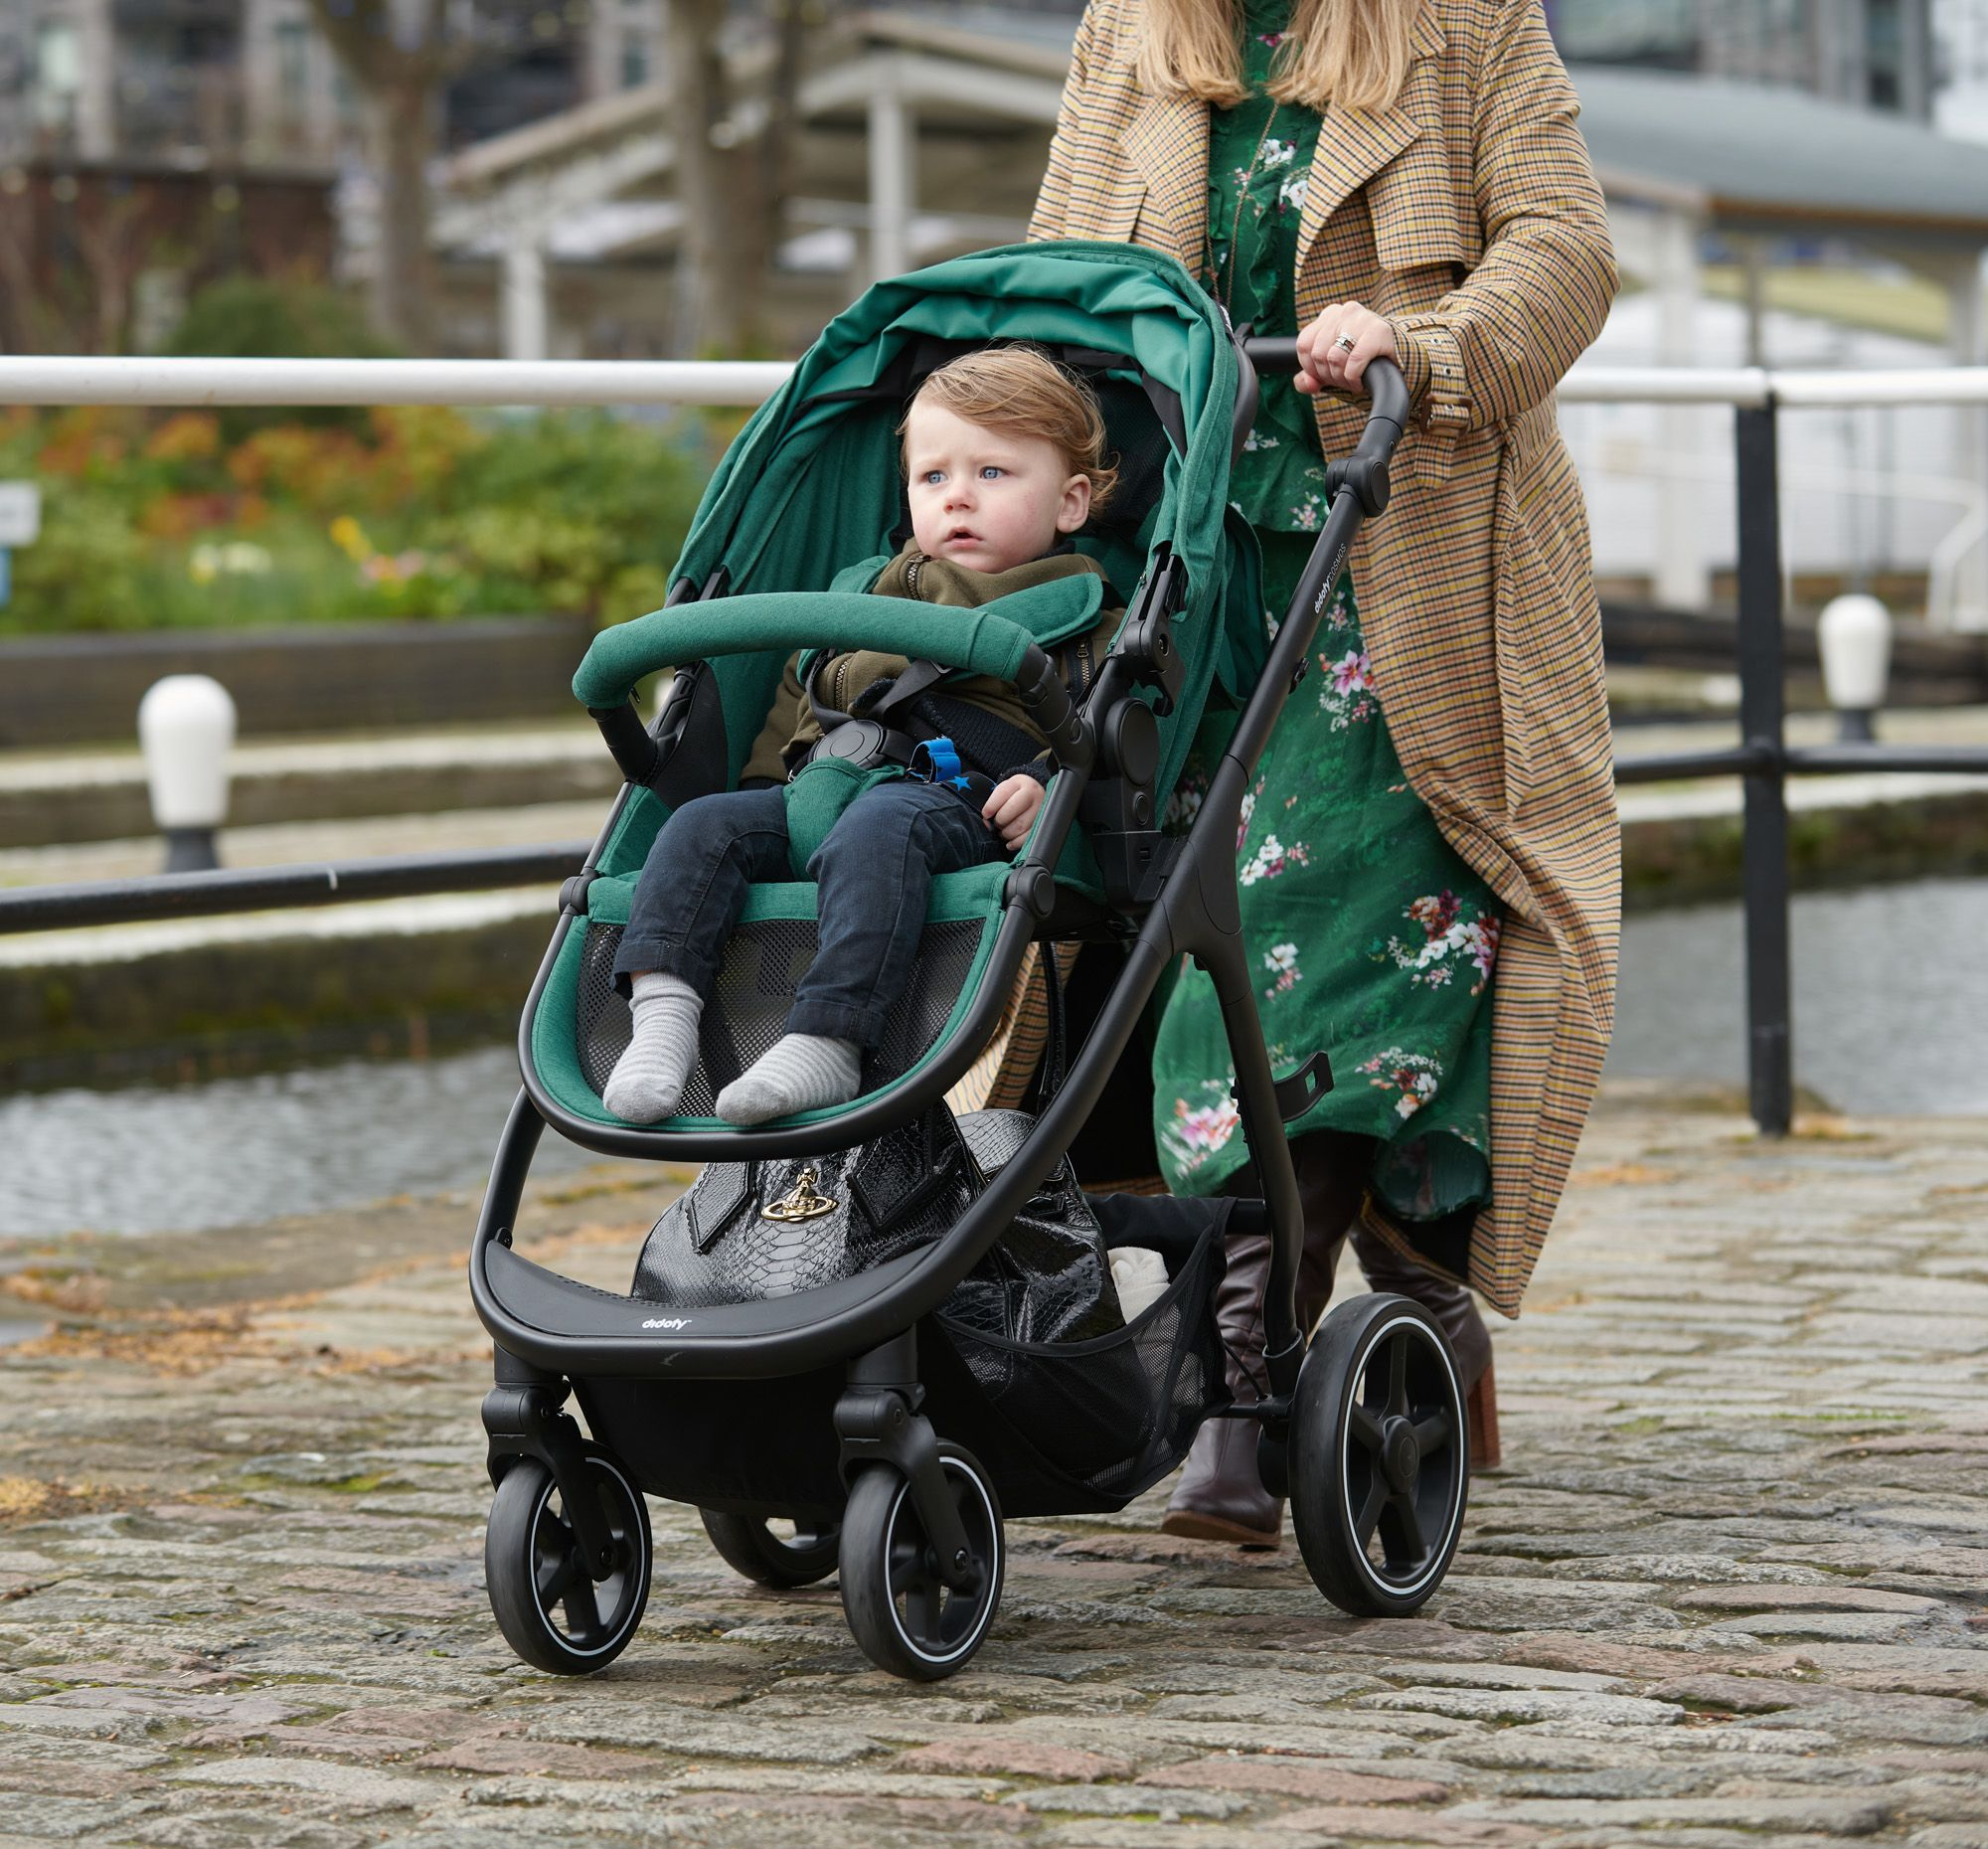 Shop The Didofy Range in 2020 Pushchair, Baby strollers